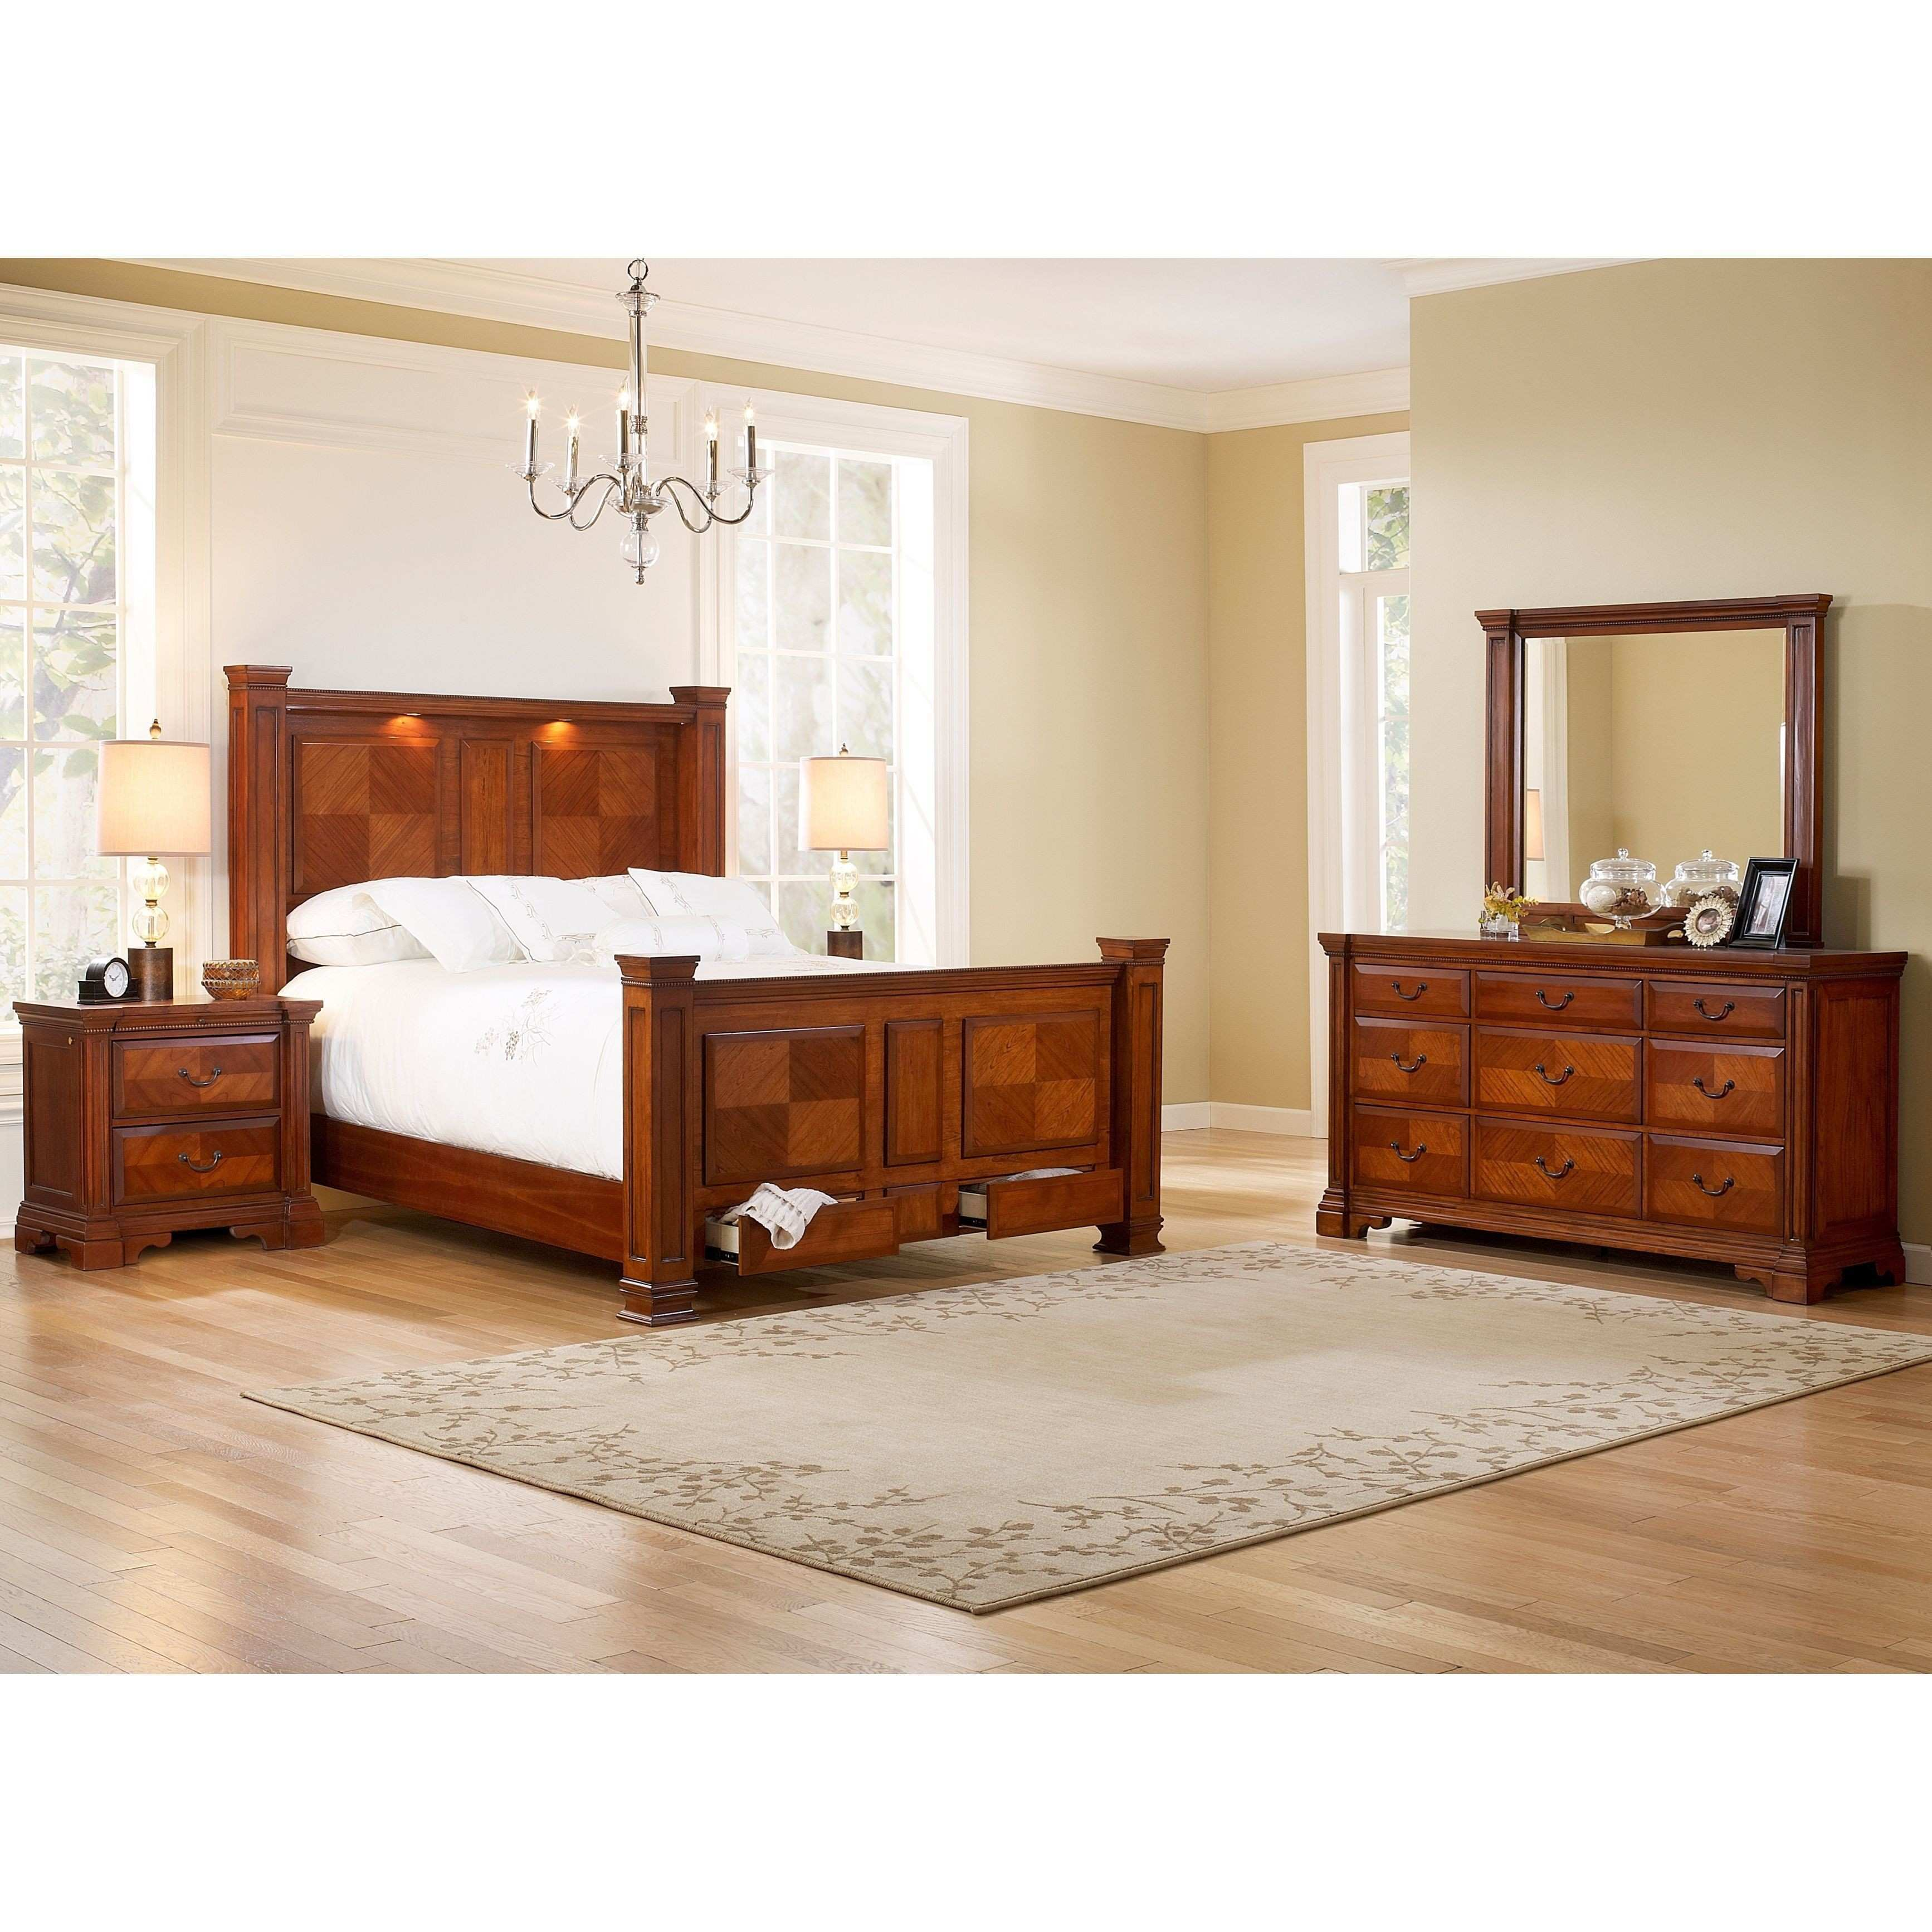 Where to Get Cheap Bed Frames Unique Wrought Iron Bed Frame Fresh